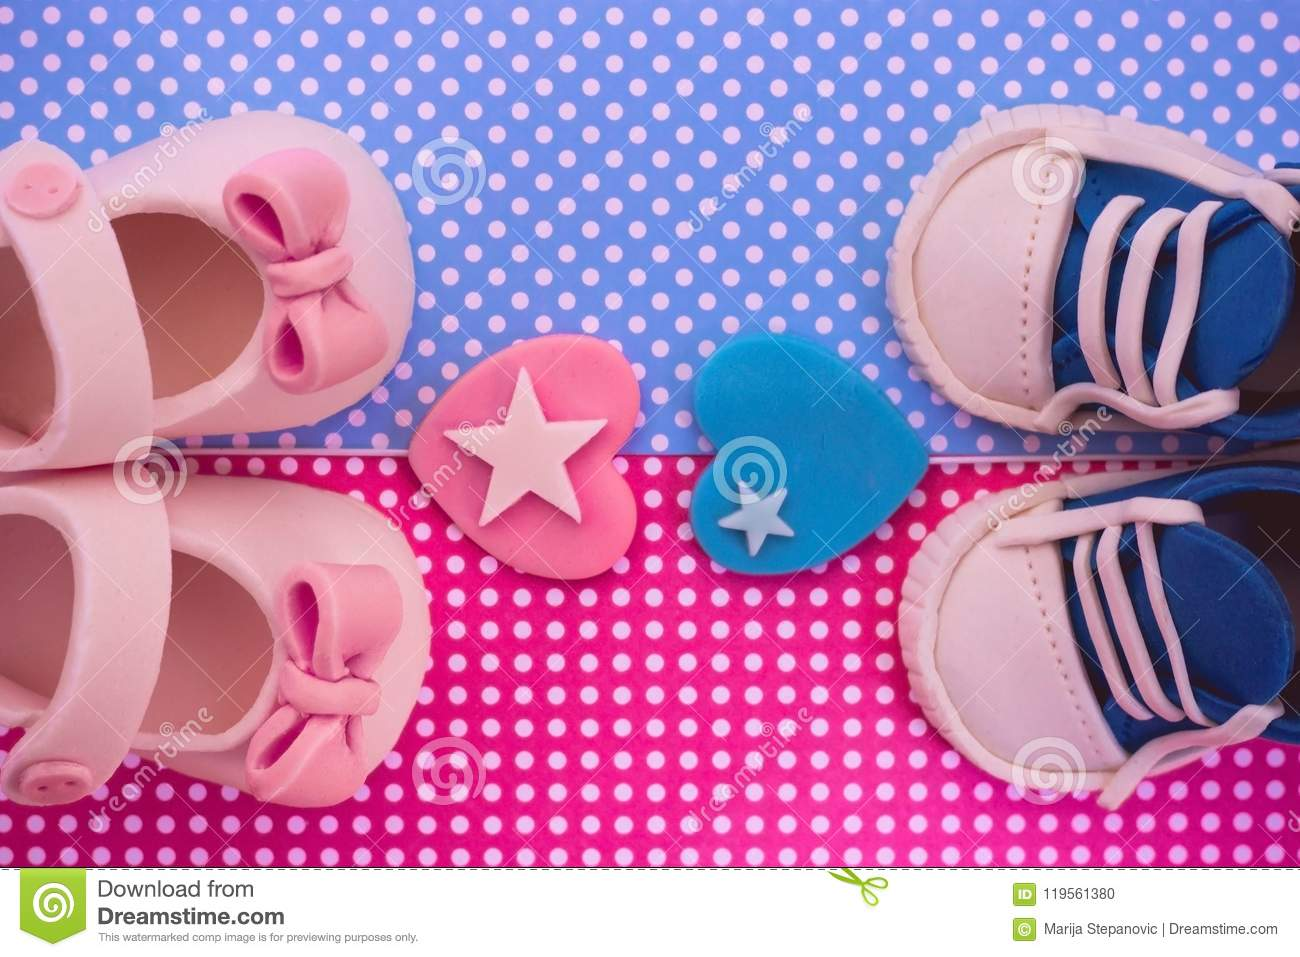 Its a boy and a girl twins baby shower invitation stock photo download its a boy and a girl twins baby shower invitation stock photo filmwisefo